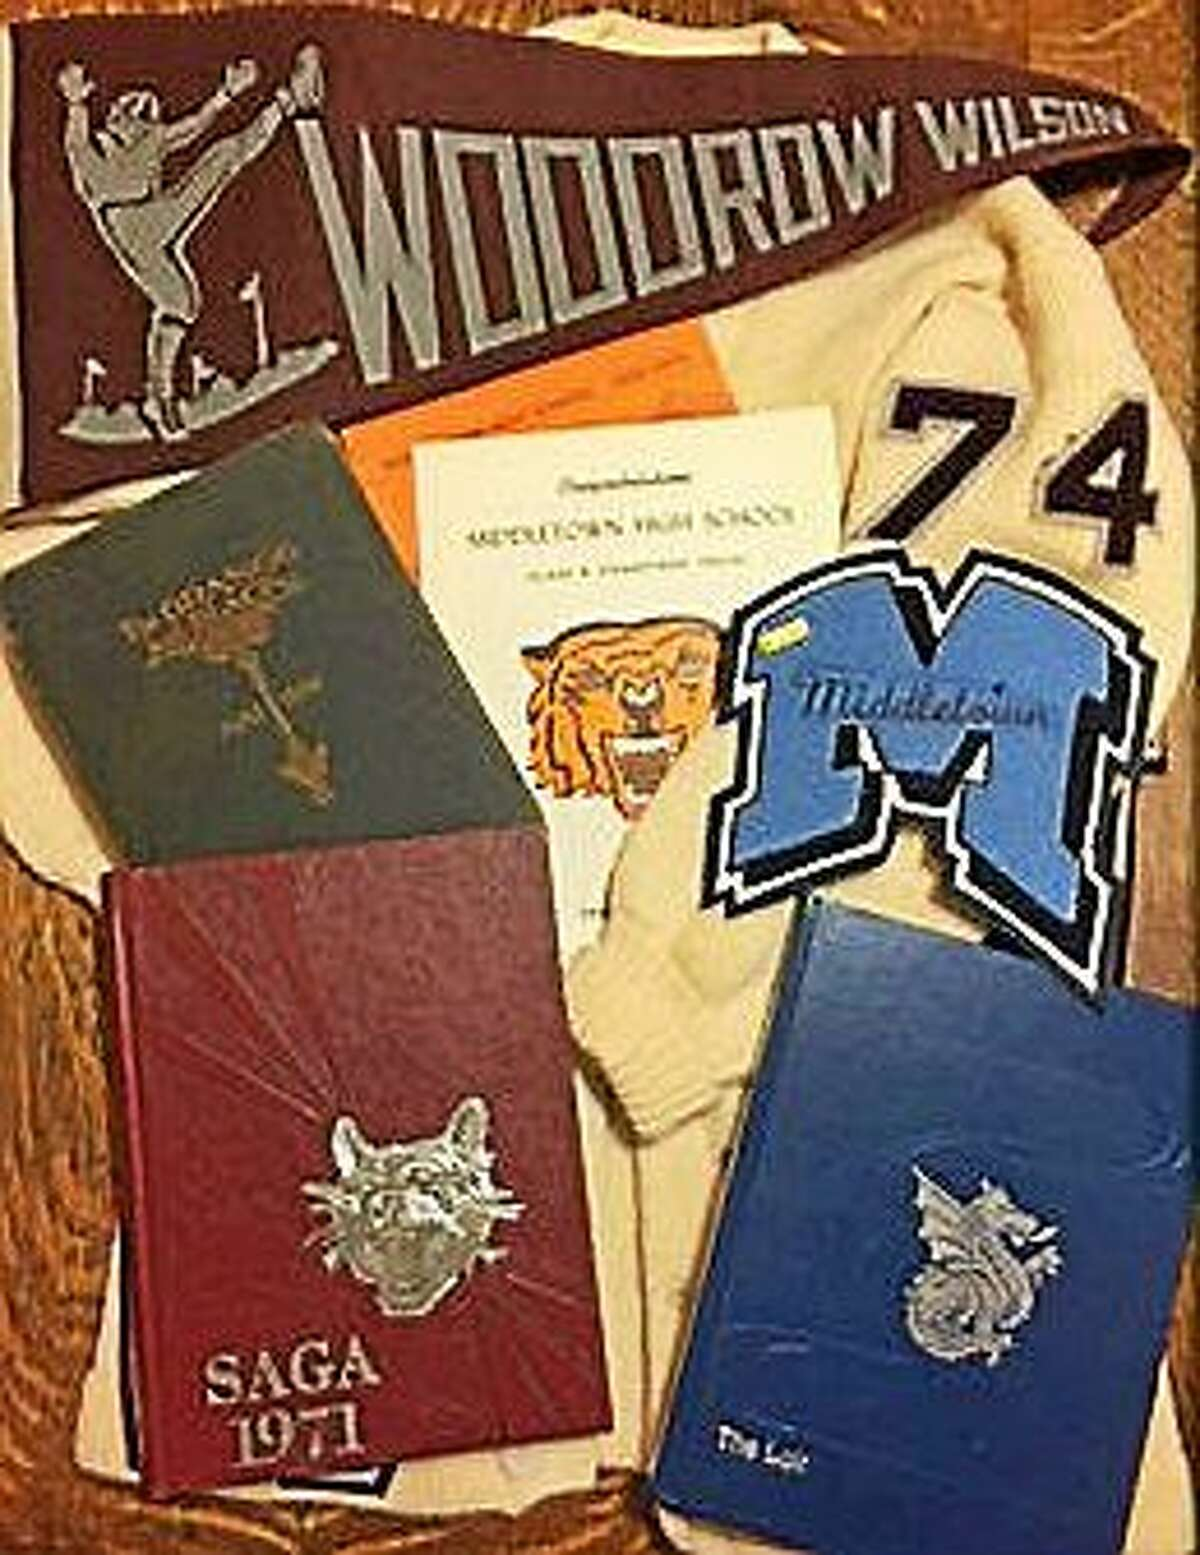 Memorabilia from Woodrow Wilson High School in Middletown will soon be part of the Wall of Honor that is tasked to the Ad Hoc Naming of School Facilities Committee.